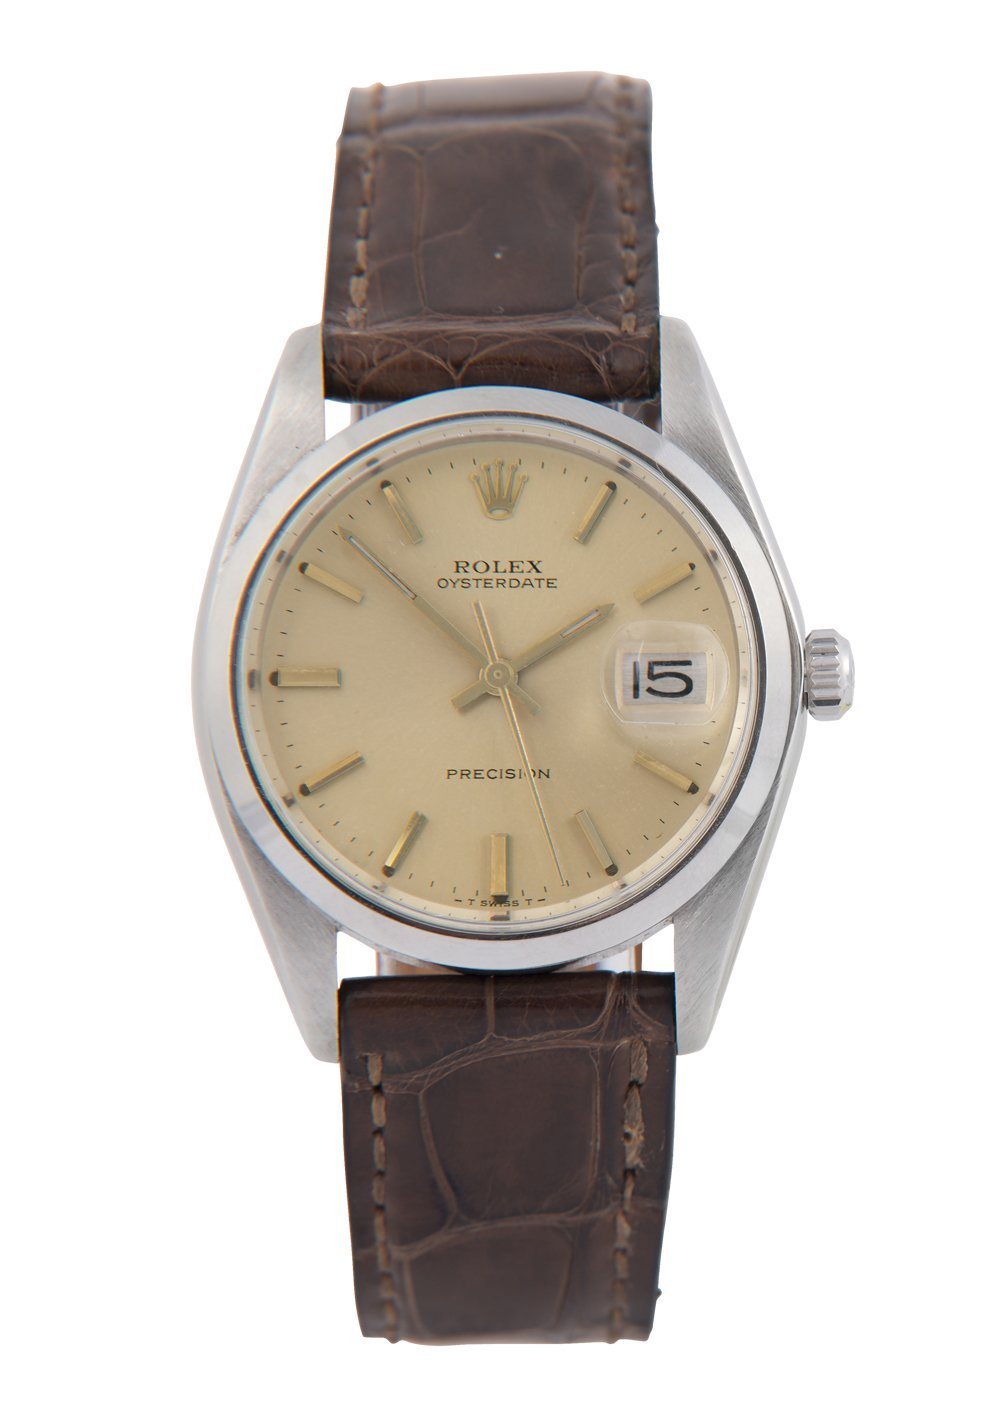 Rolex Oysterdate Steel Watch with Champagne Dial, 6694